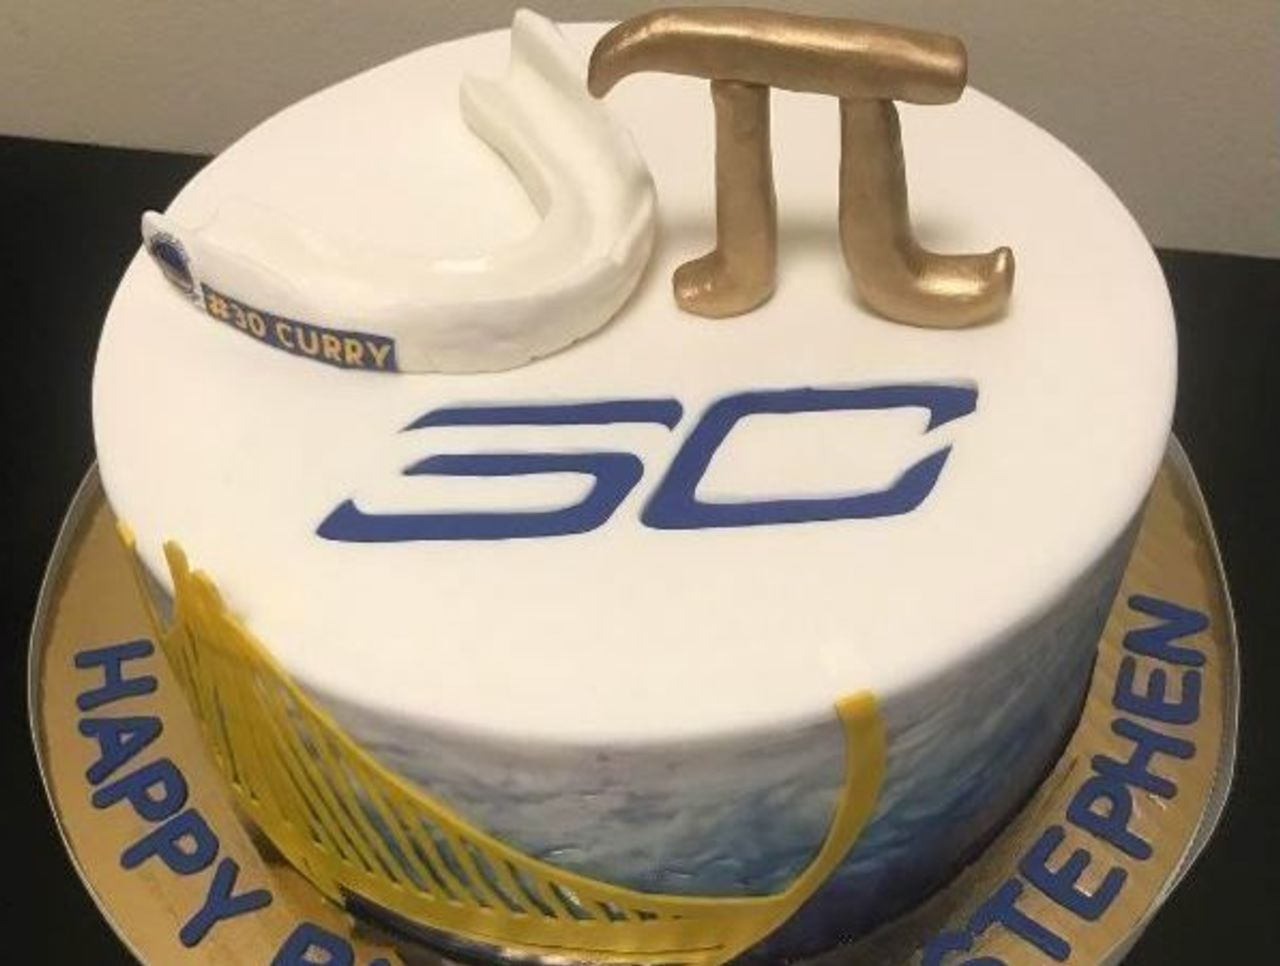 Stephen Currys Birthday Cake Features Mouthguard Pi Symbol